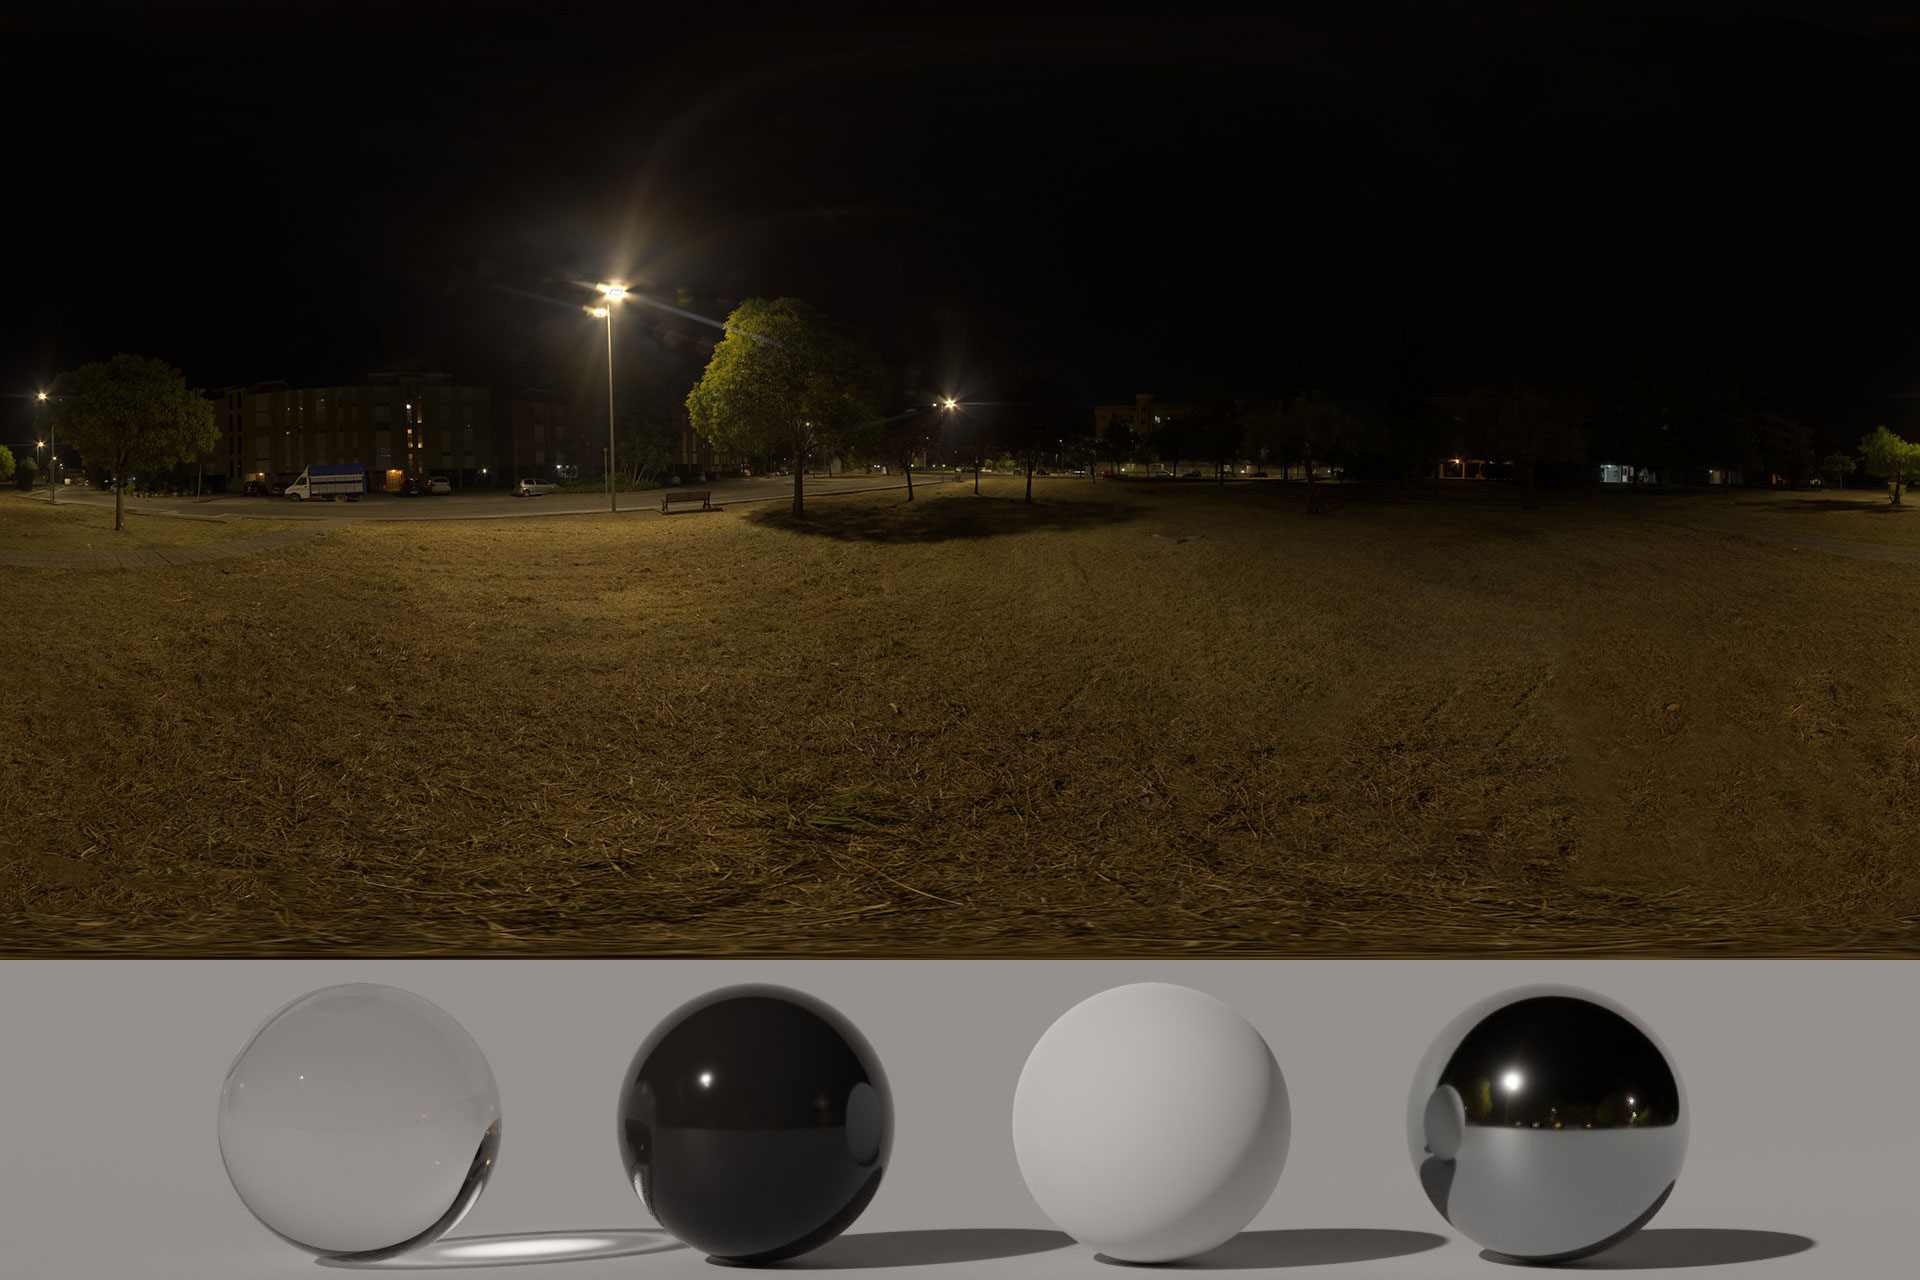 Download an Exclusive and Awesome HDRi Night